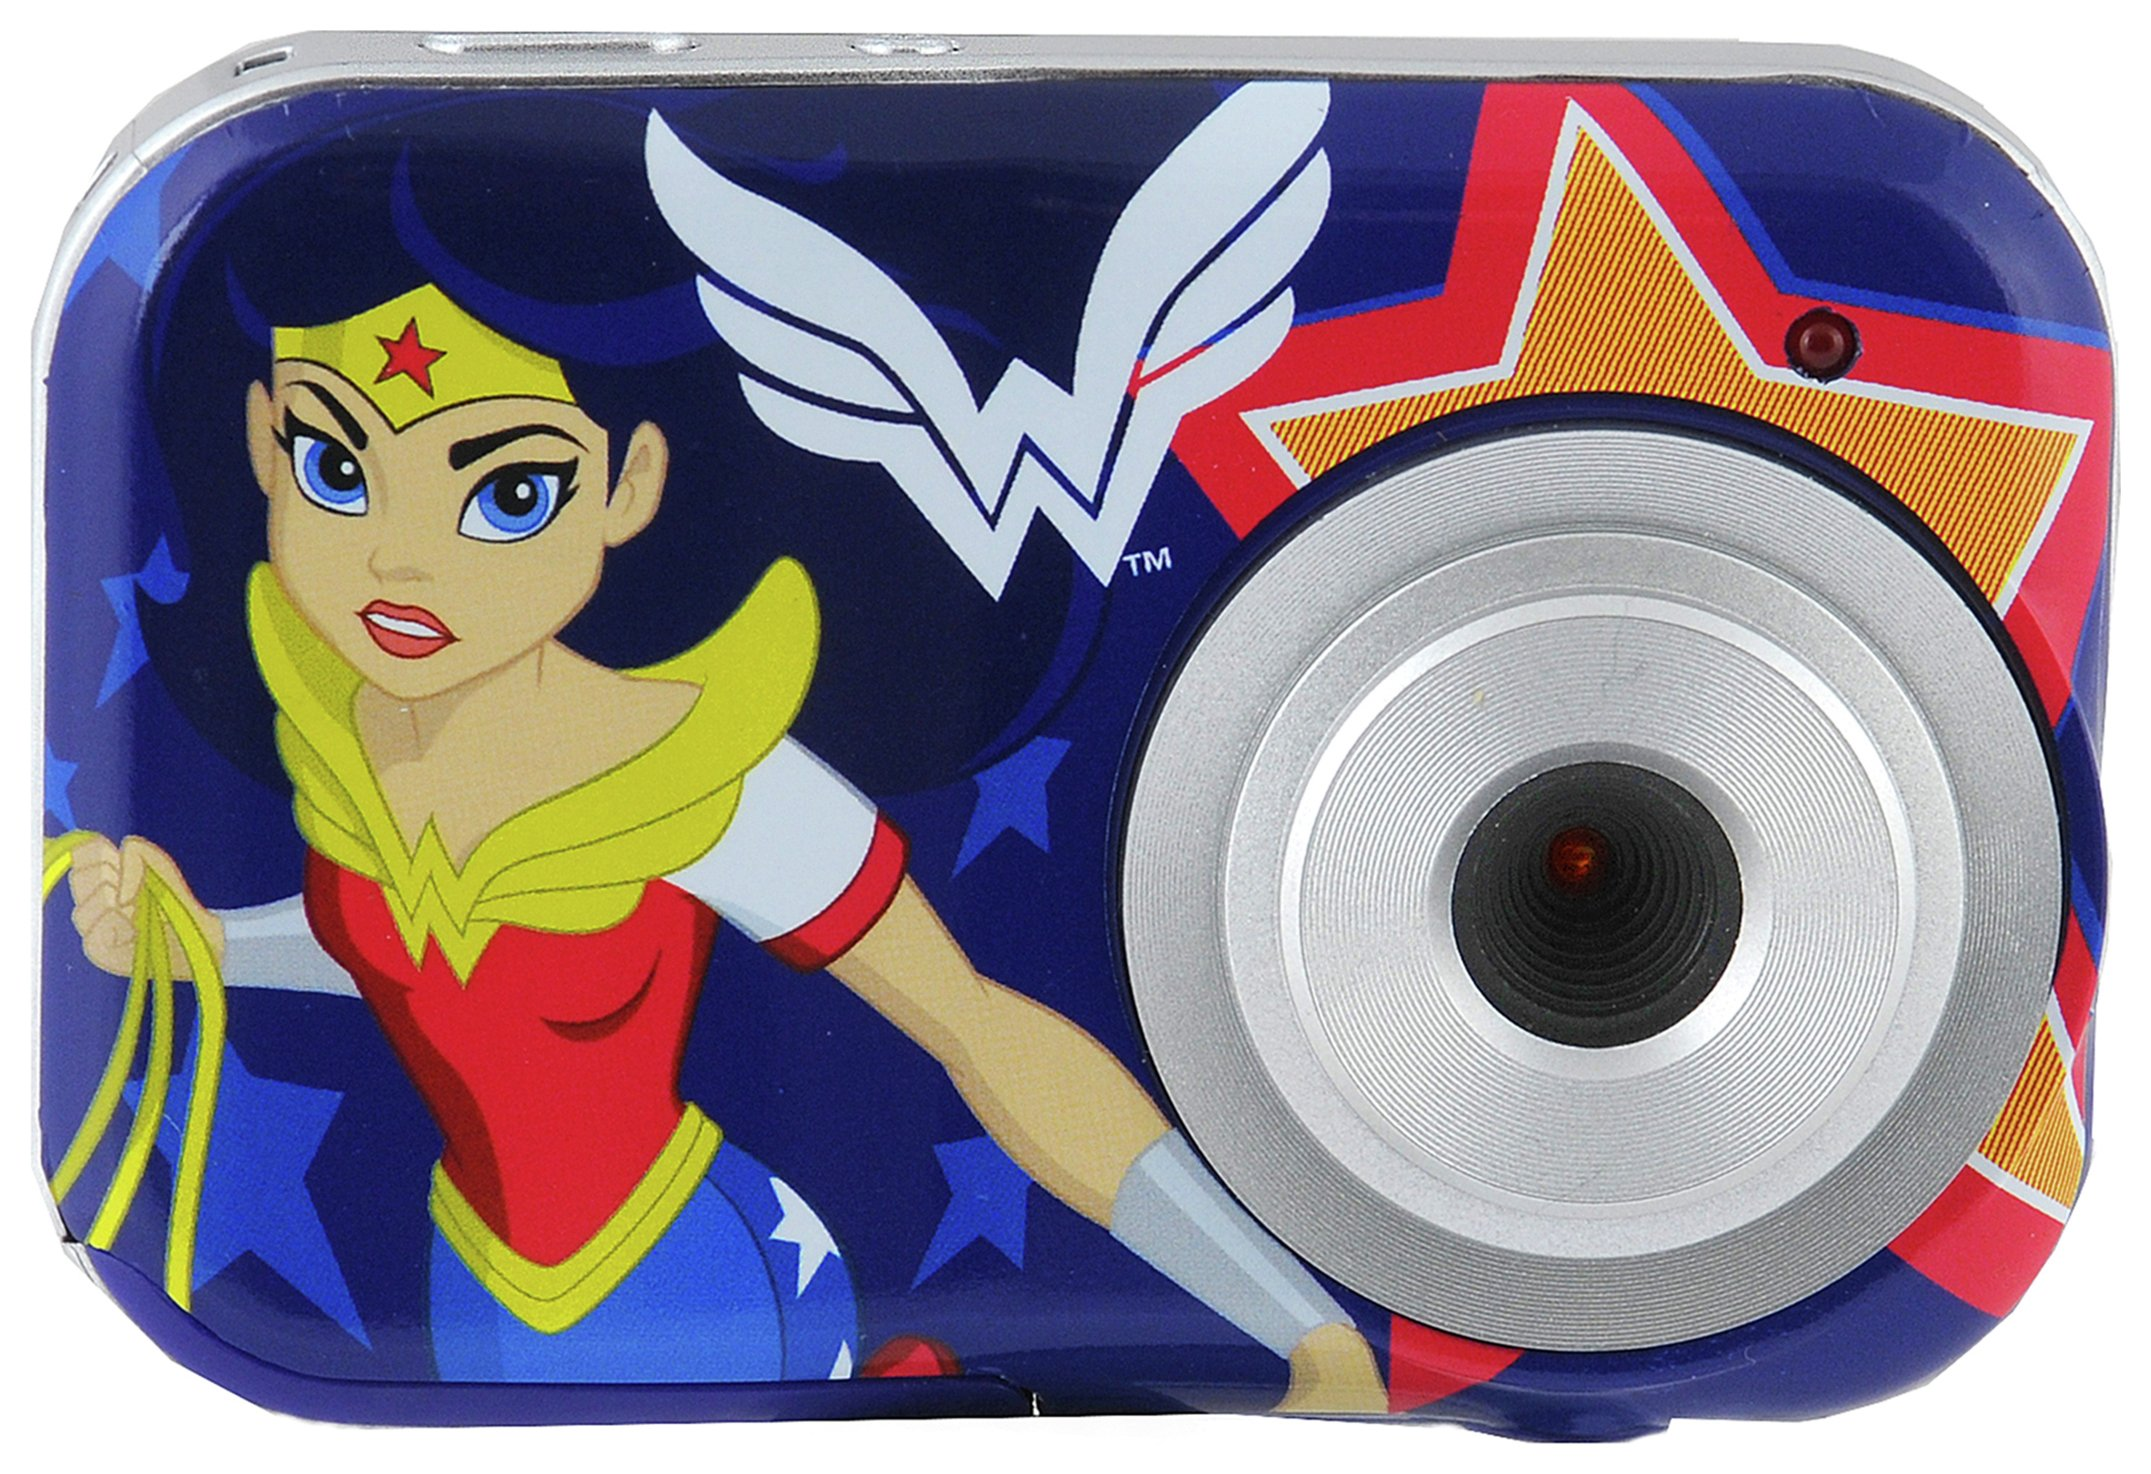 Image of DC Super Hero Girls 5MP Digital Camera.